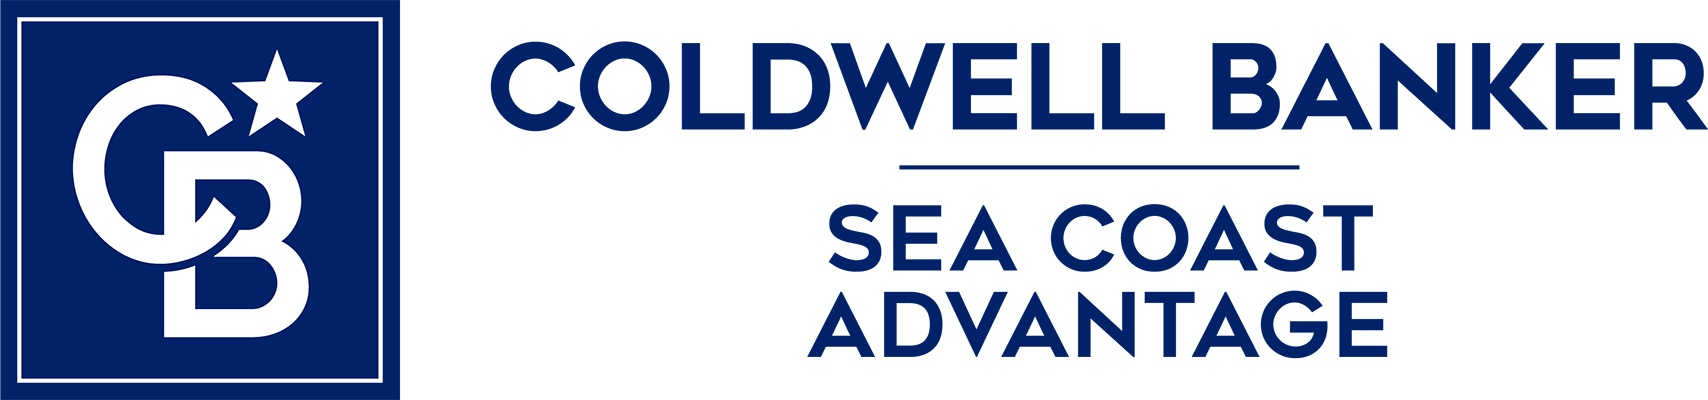 Jack Gale - Coldwell Banker Sea Coast Advantage Realty